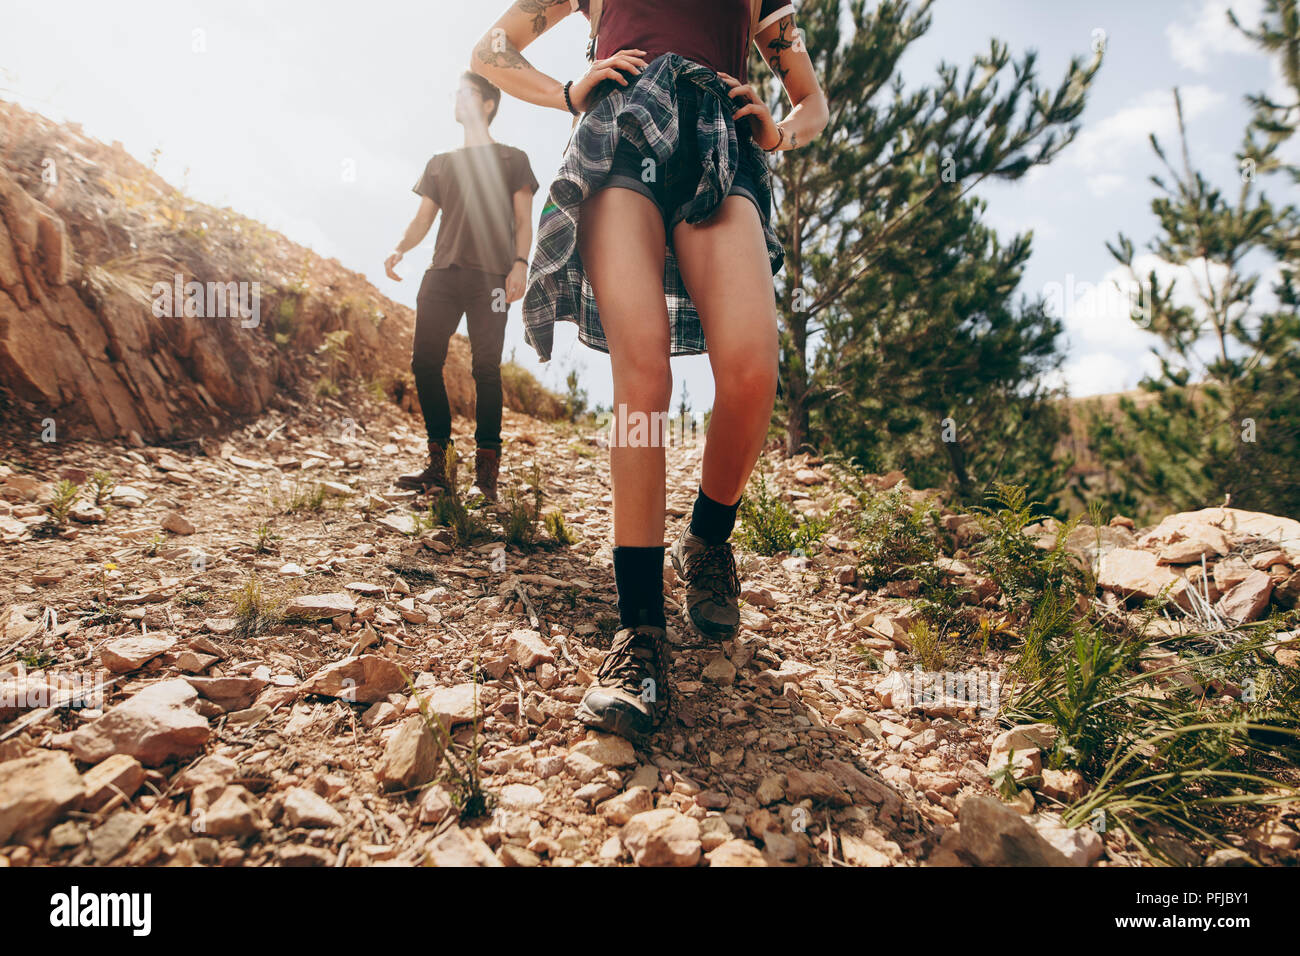 Explorer couple walking in a forest. Woman walking on a rocky path with her partner following her on a sunny day. - Stock Image